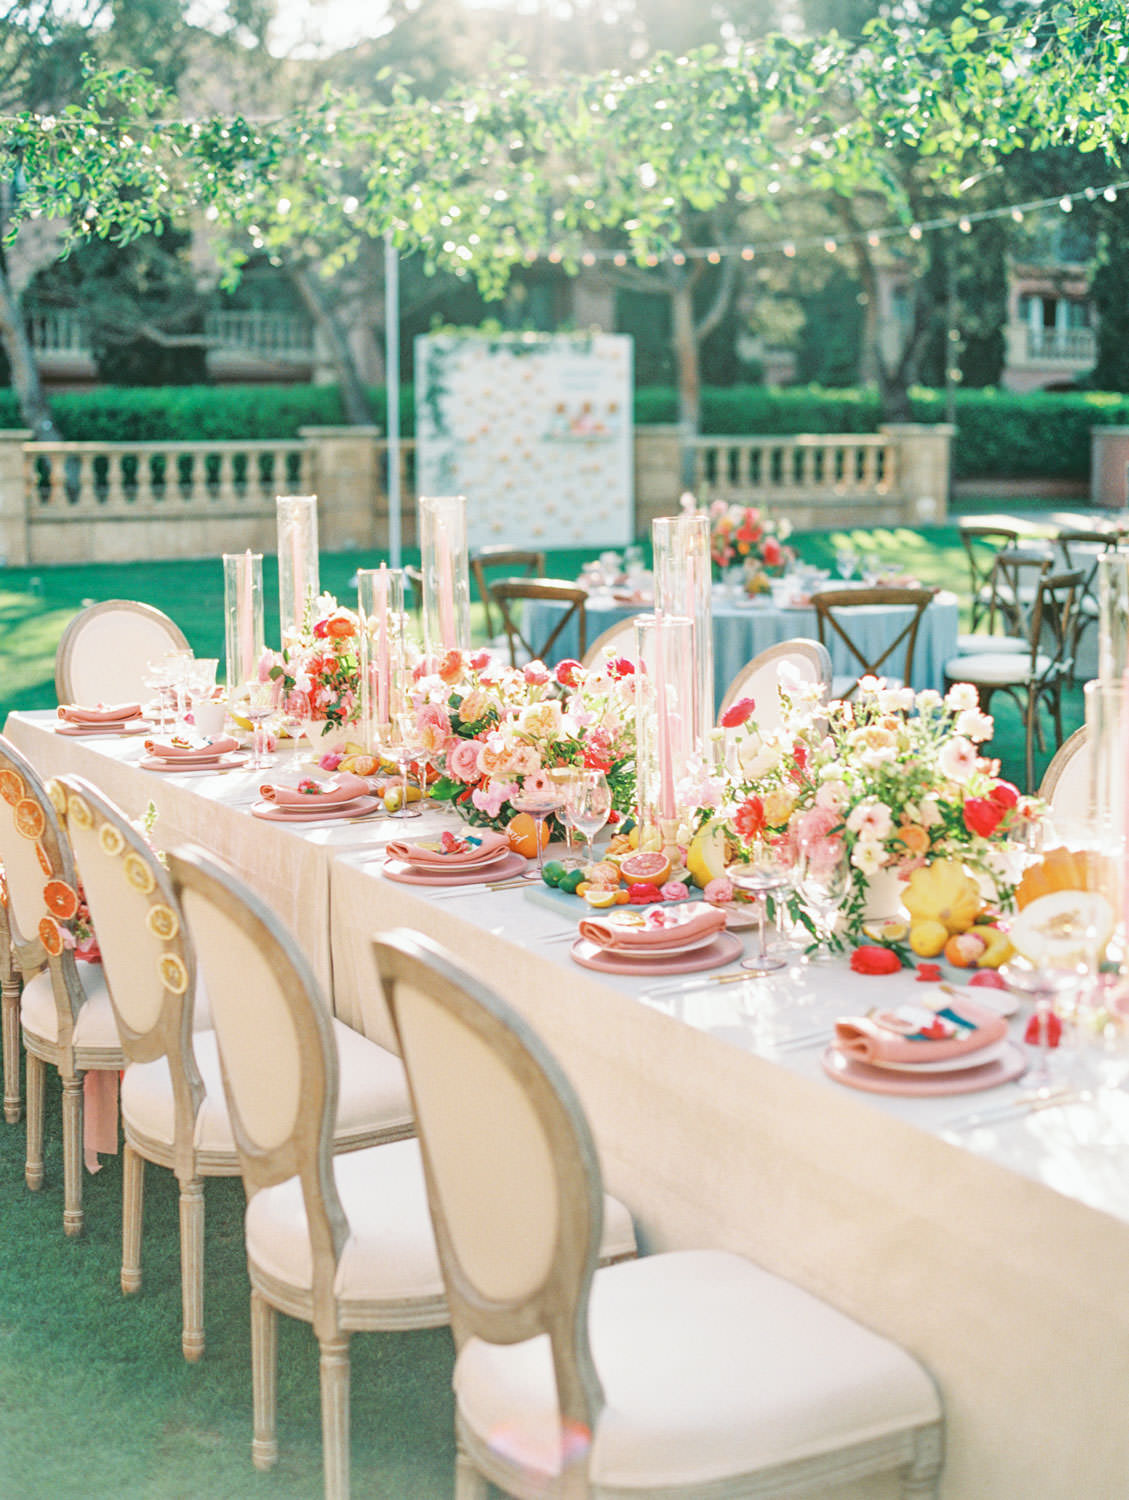 Al fresco reception with table covered in ivory velvet linen. Oak louis chairs. Smilax hanging on market lights above the table. Mauve charger, soft blush plates, coral napkin with grey cloth square on top and hand torn calligraphy place card. Gold flatware with white handles, pink taper candles in hurricanes, and centerpiece with ivory, peach, pink, yellow, and green roses, ranunculus, daffodils, sweet peas, and peonies. A Wedding Photographer's Fairmont Grand Del Mar Wedding